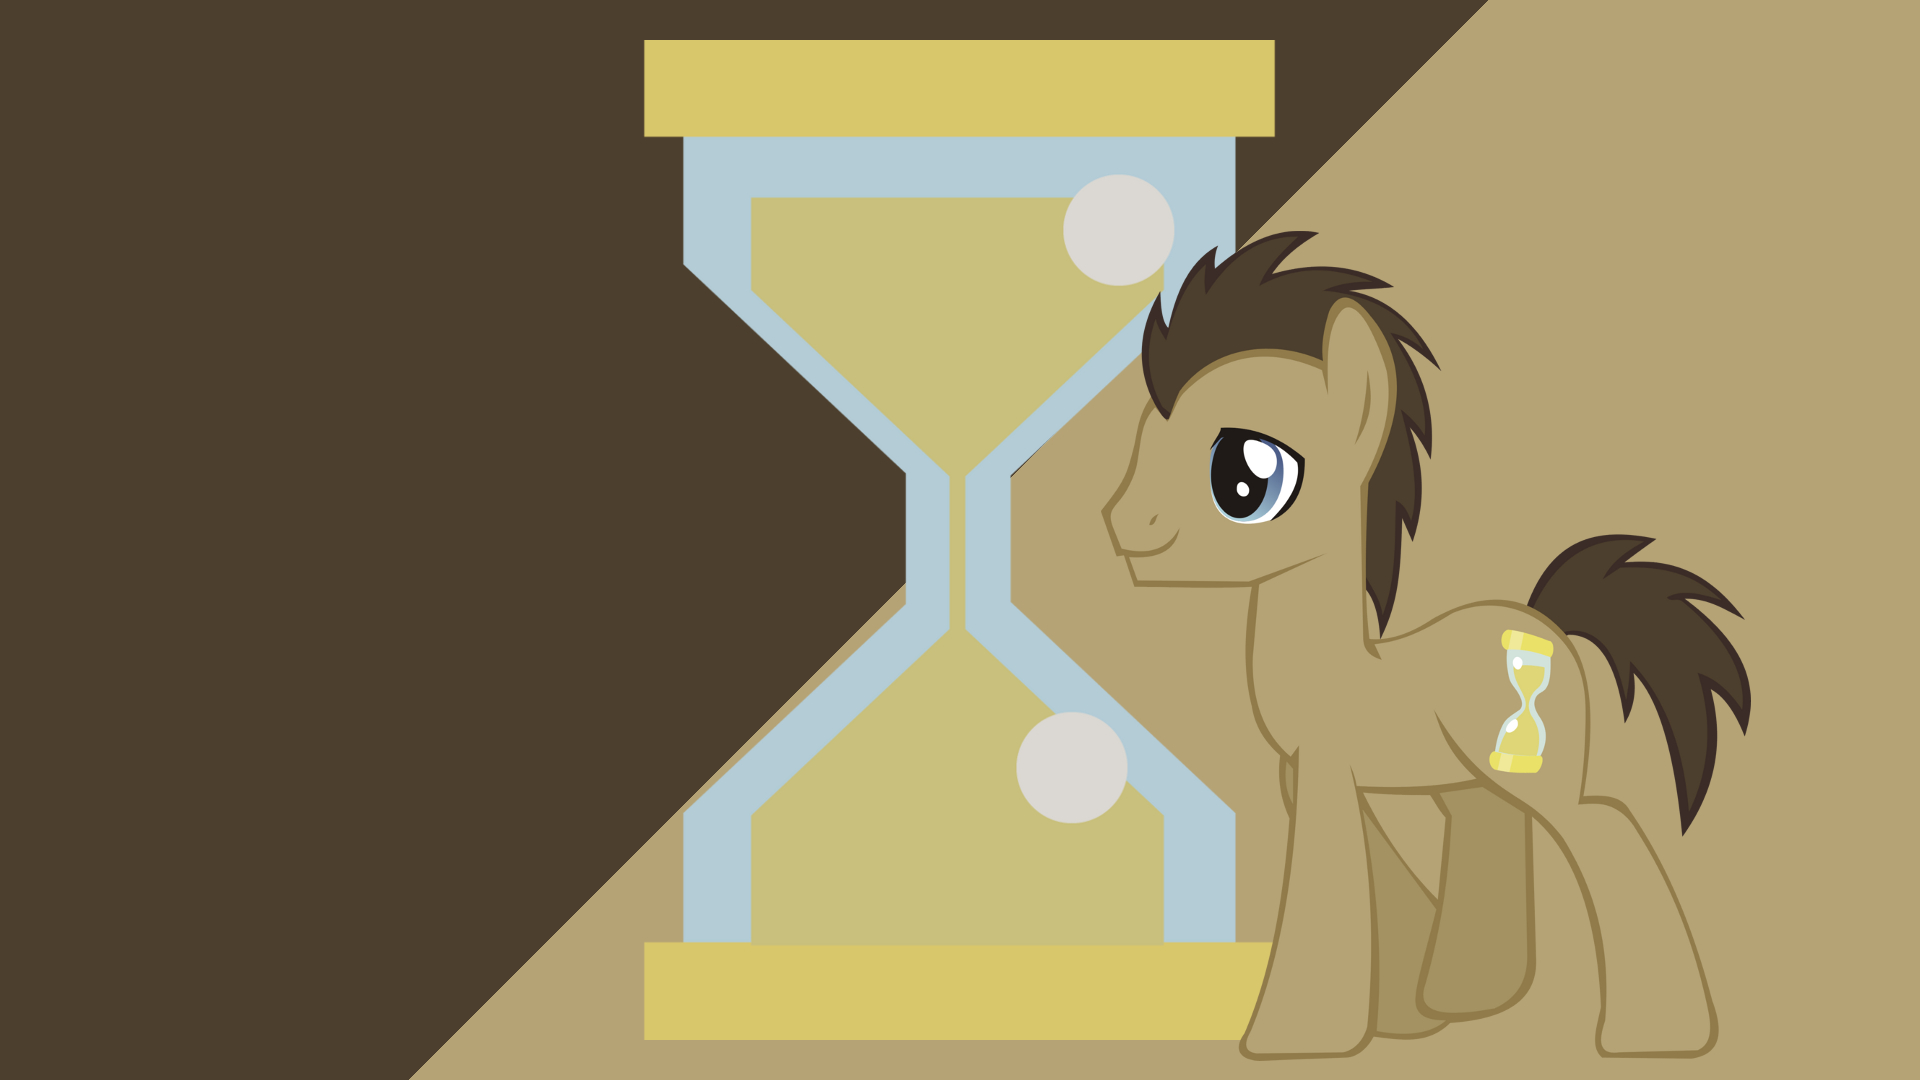 Minimalist Wallpaper 28: Doctor Whooves by Kna, ooklah and Softfang